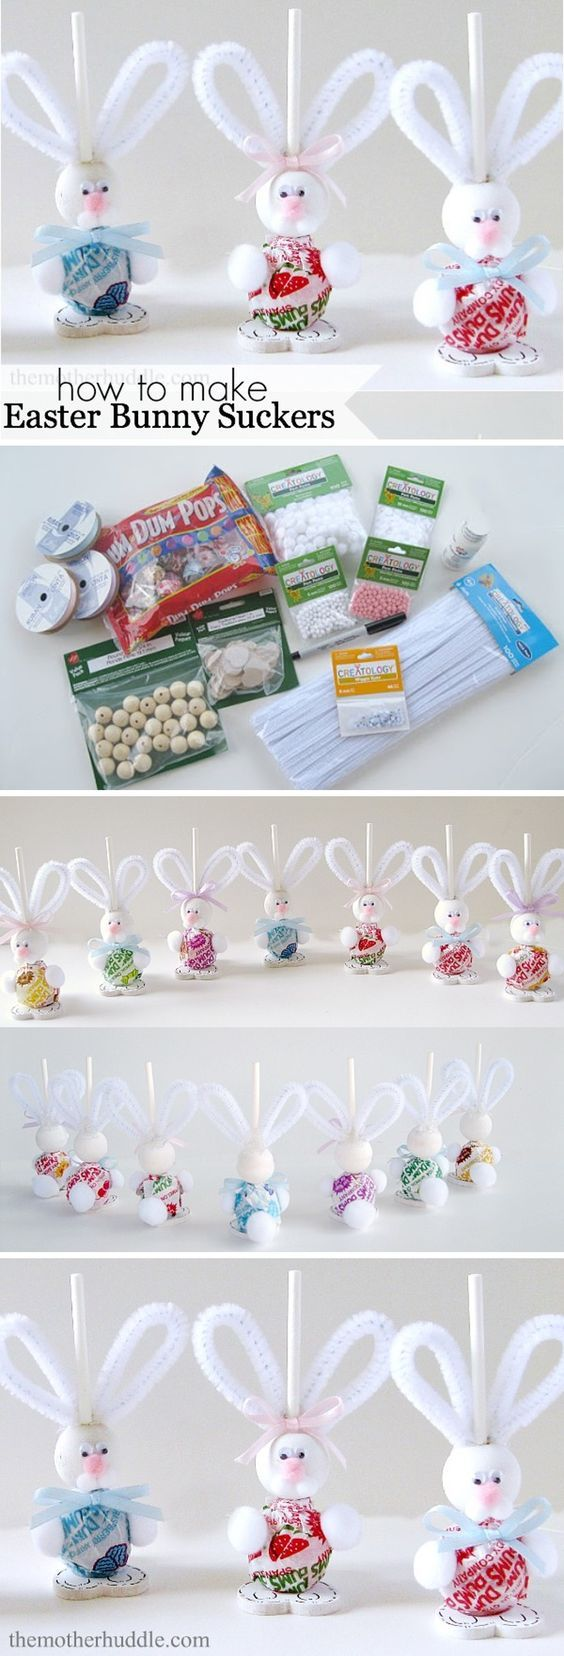 92 best Paasknutsels images on Pinterest | Easter crafts ...